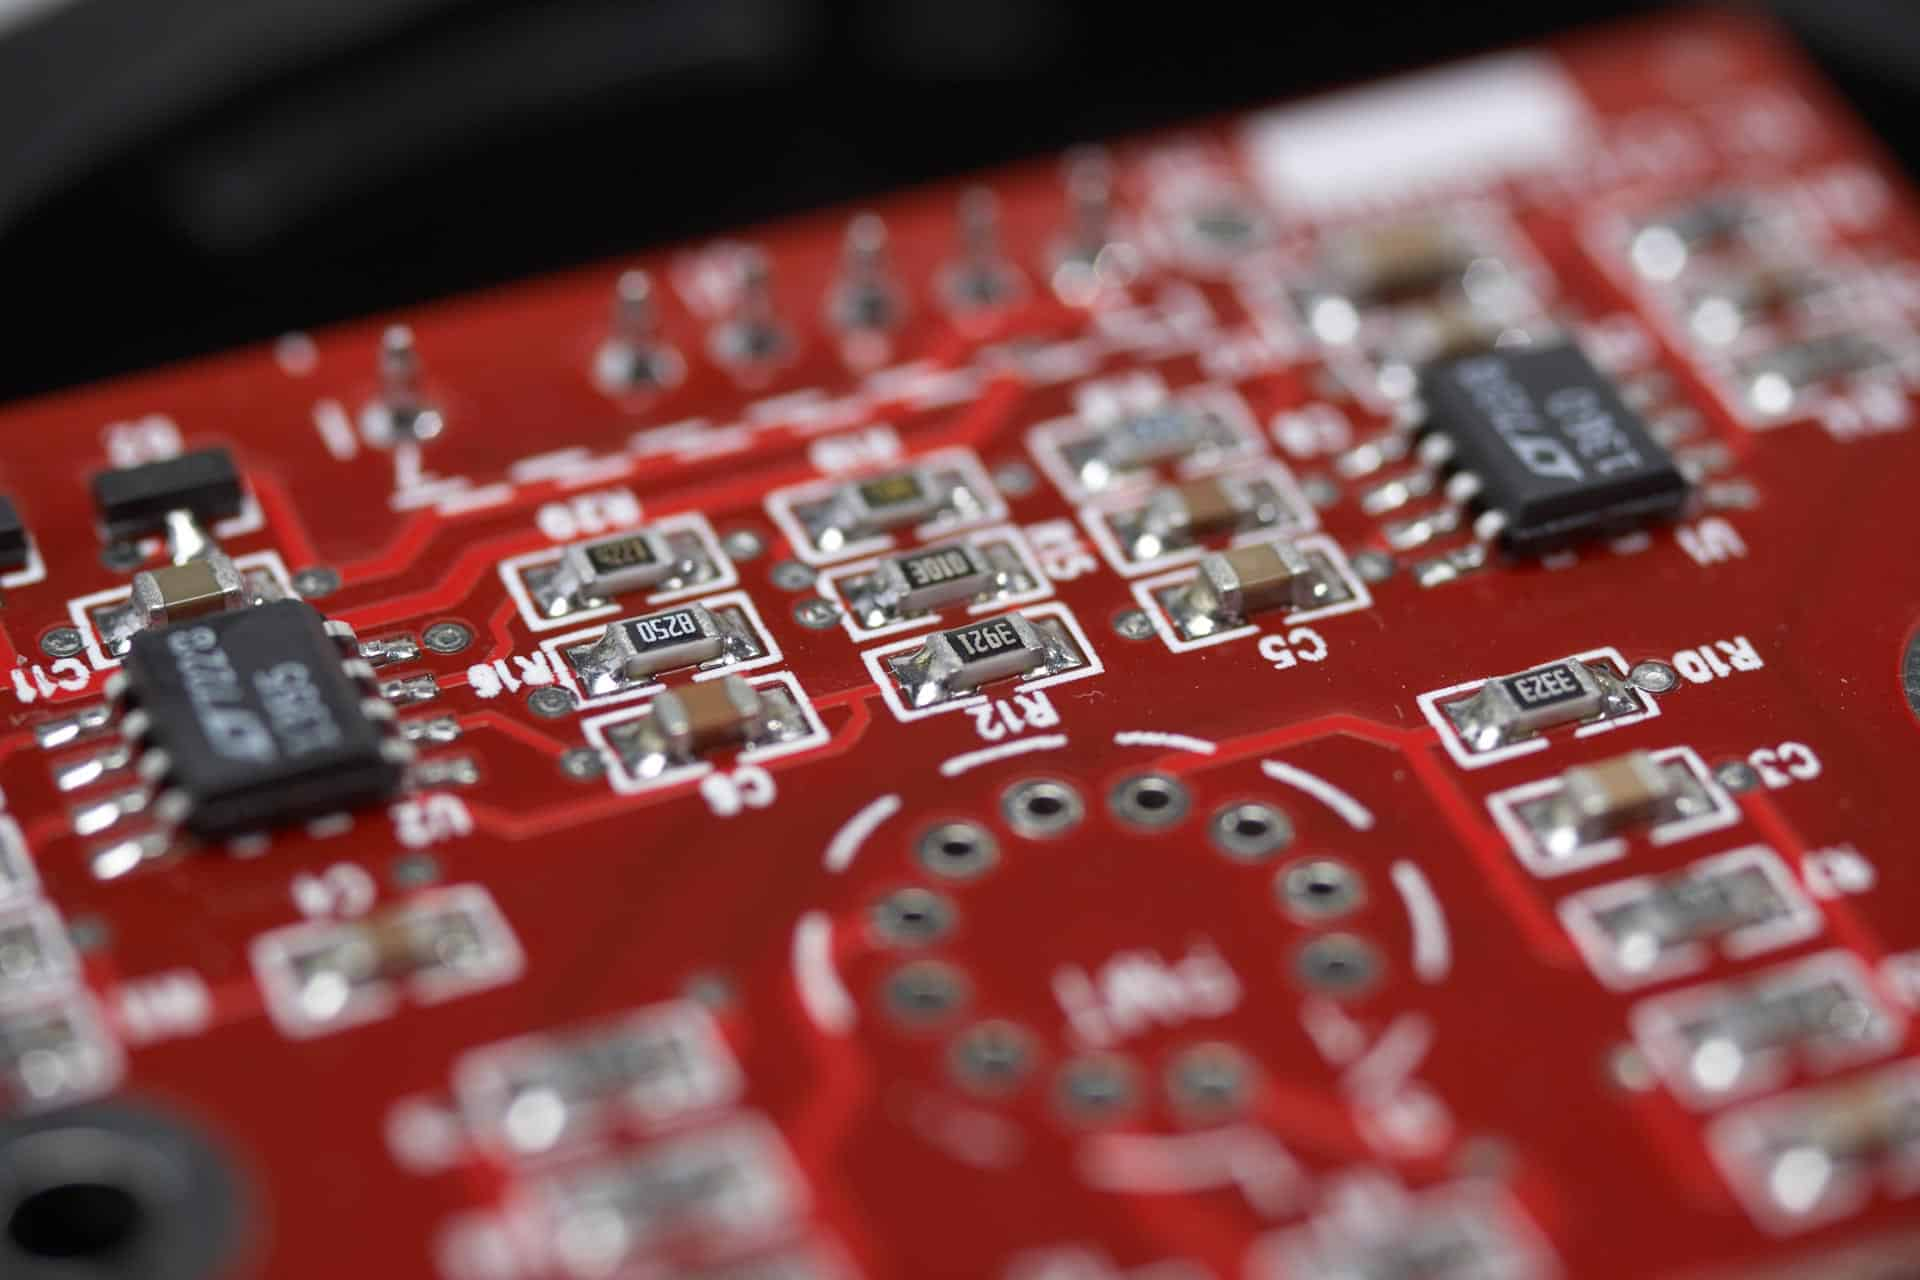 printed circuit board with SMT or surface mount technology